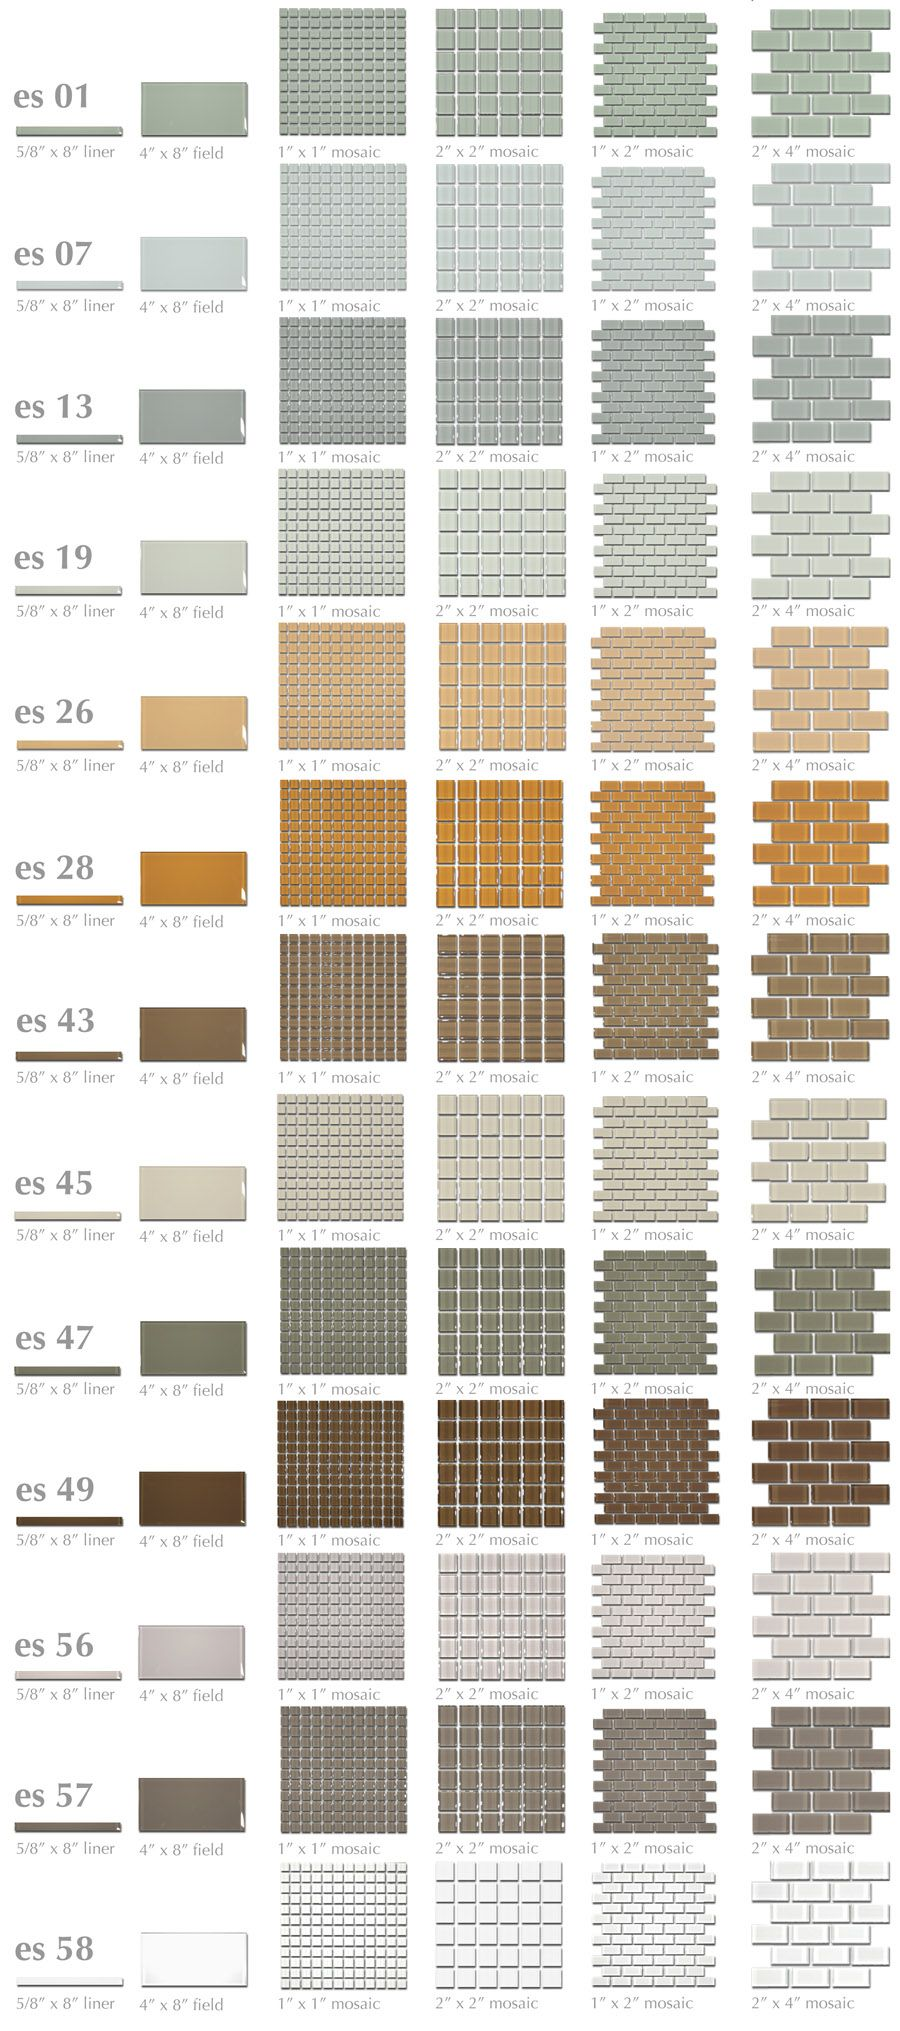 Kitchen Backsplash Color Is Es 56 2x4 Moda Vetro Single